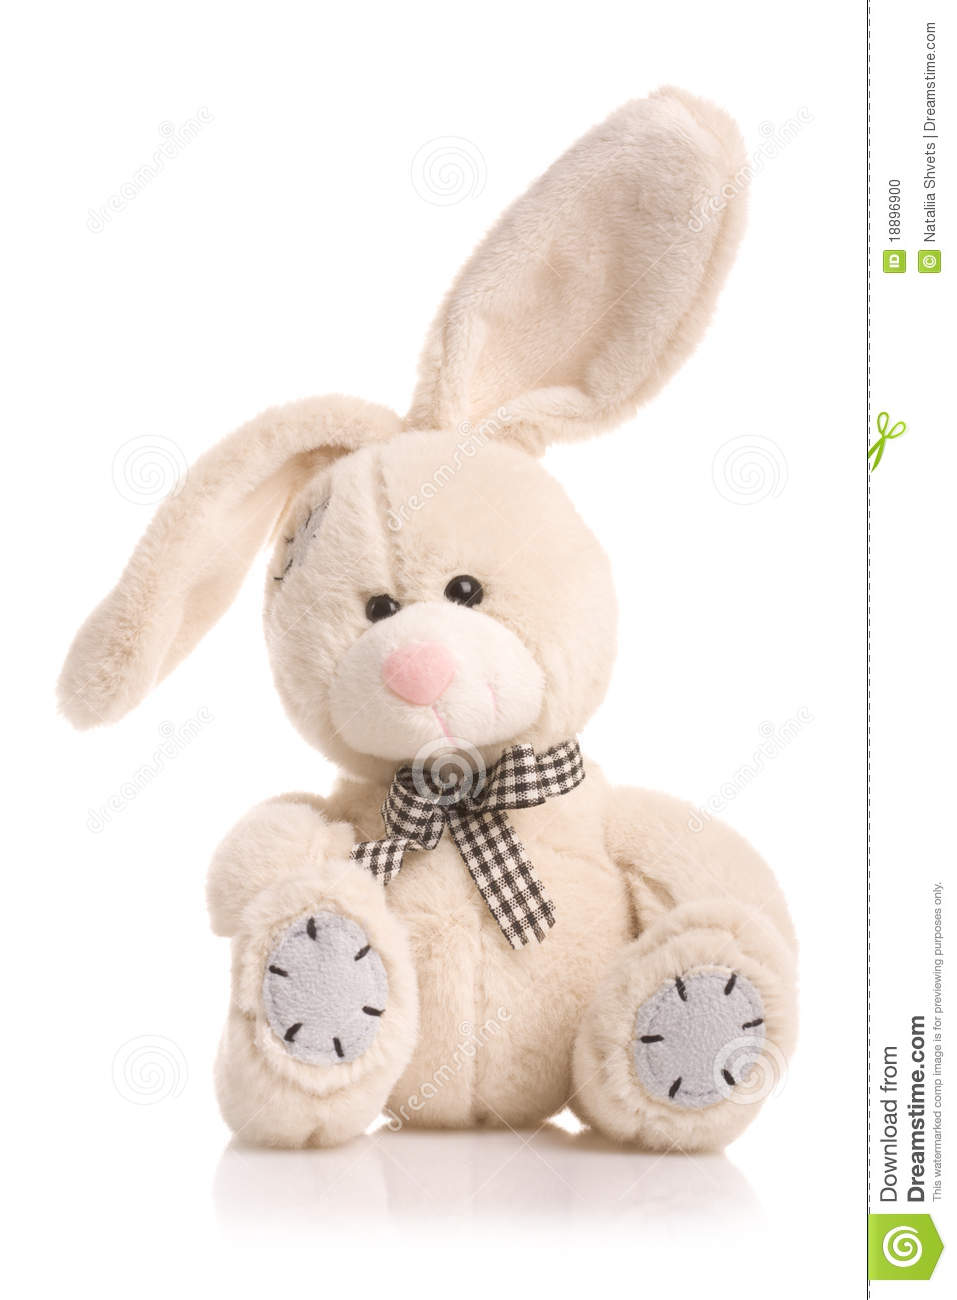 Toys For Bunnies : Bunny rabbit cuddly toy stock photo image of hare alone